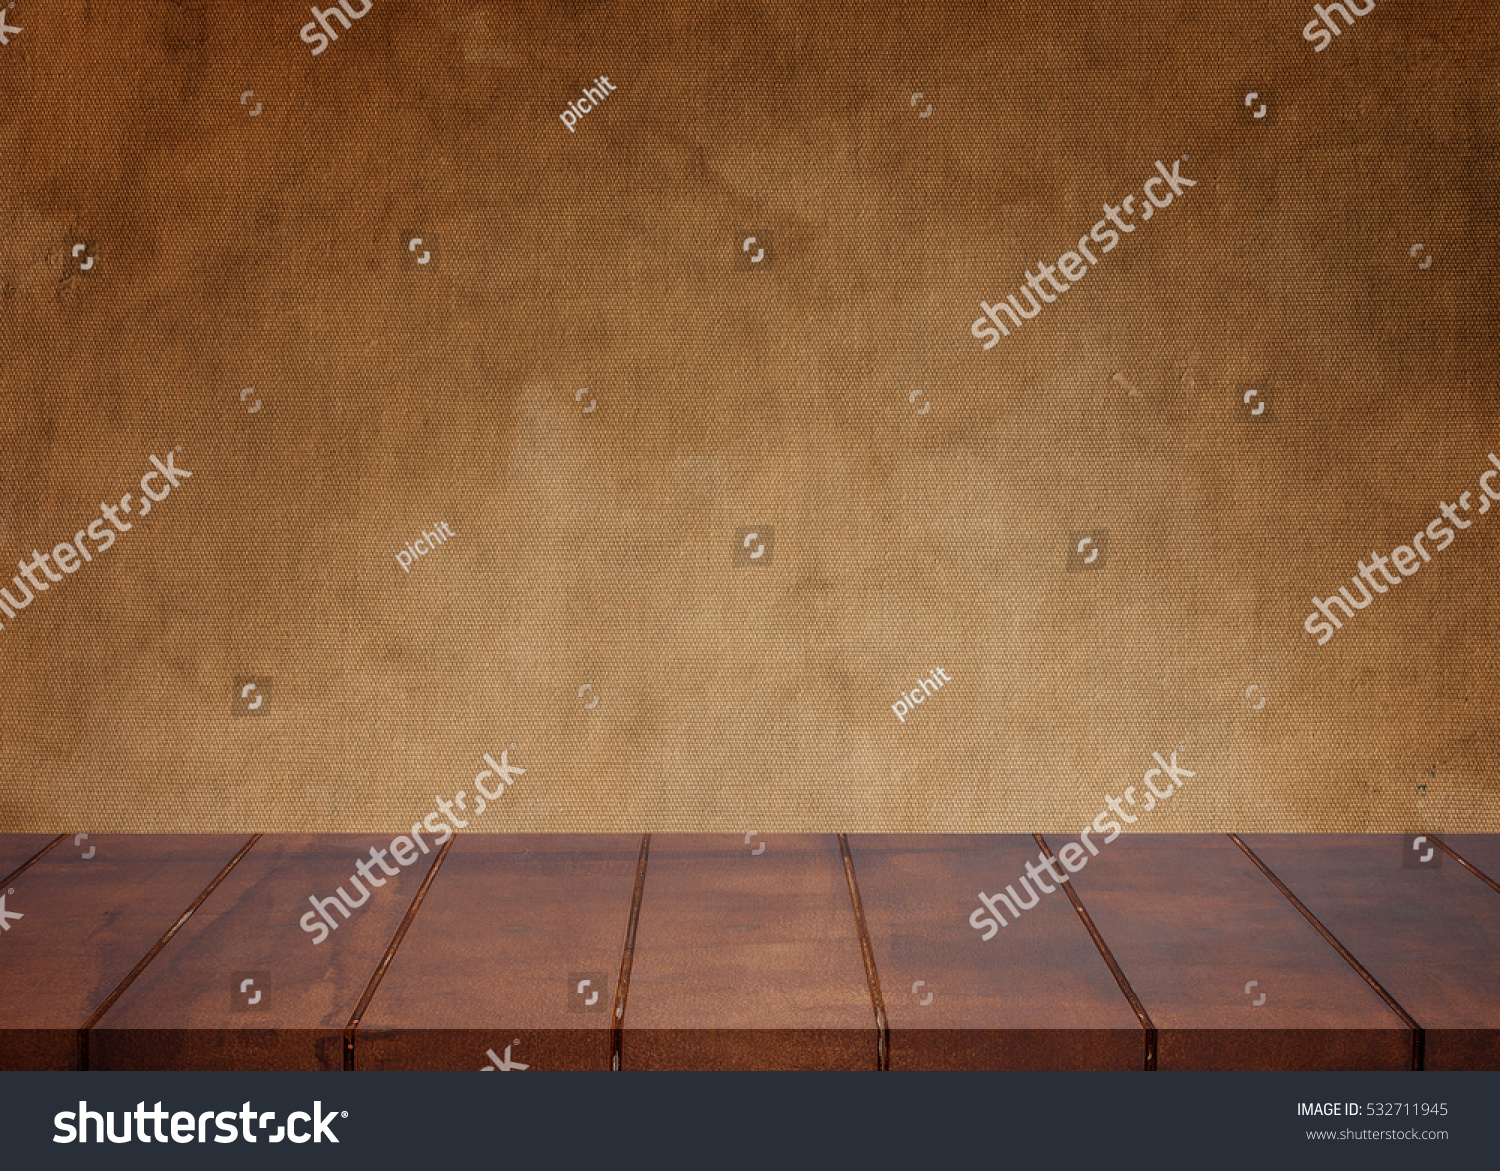 Empty Wooden Floor Old Retro Cloth Stock Photo 532711945